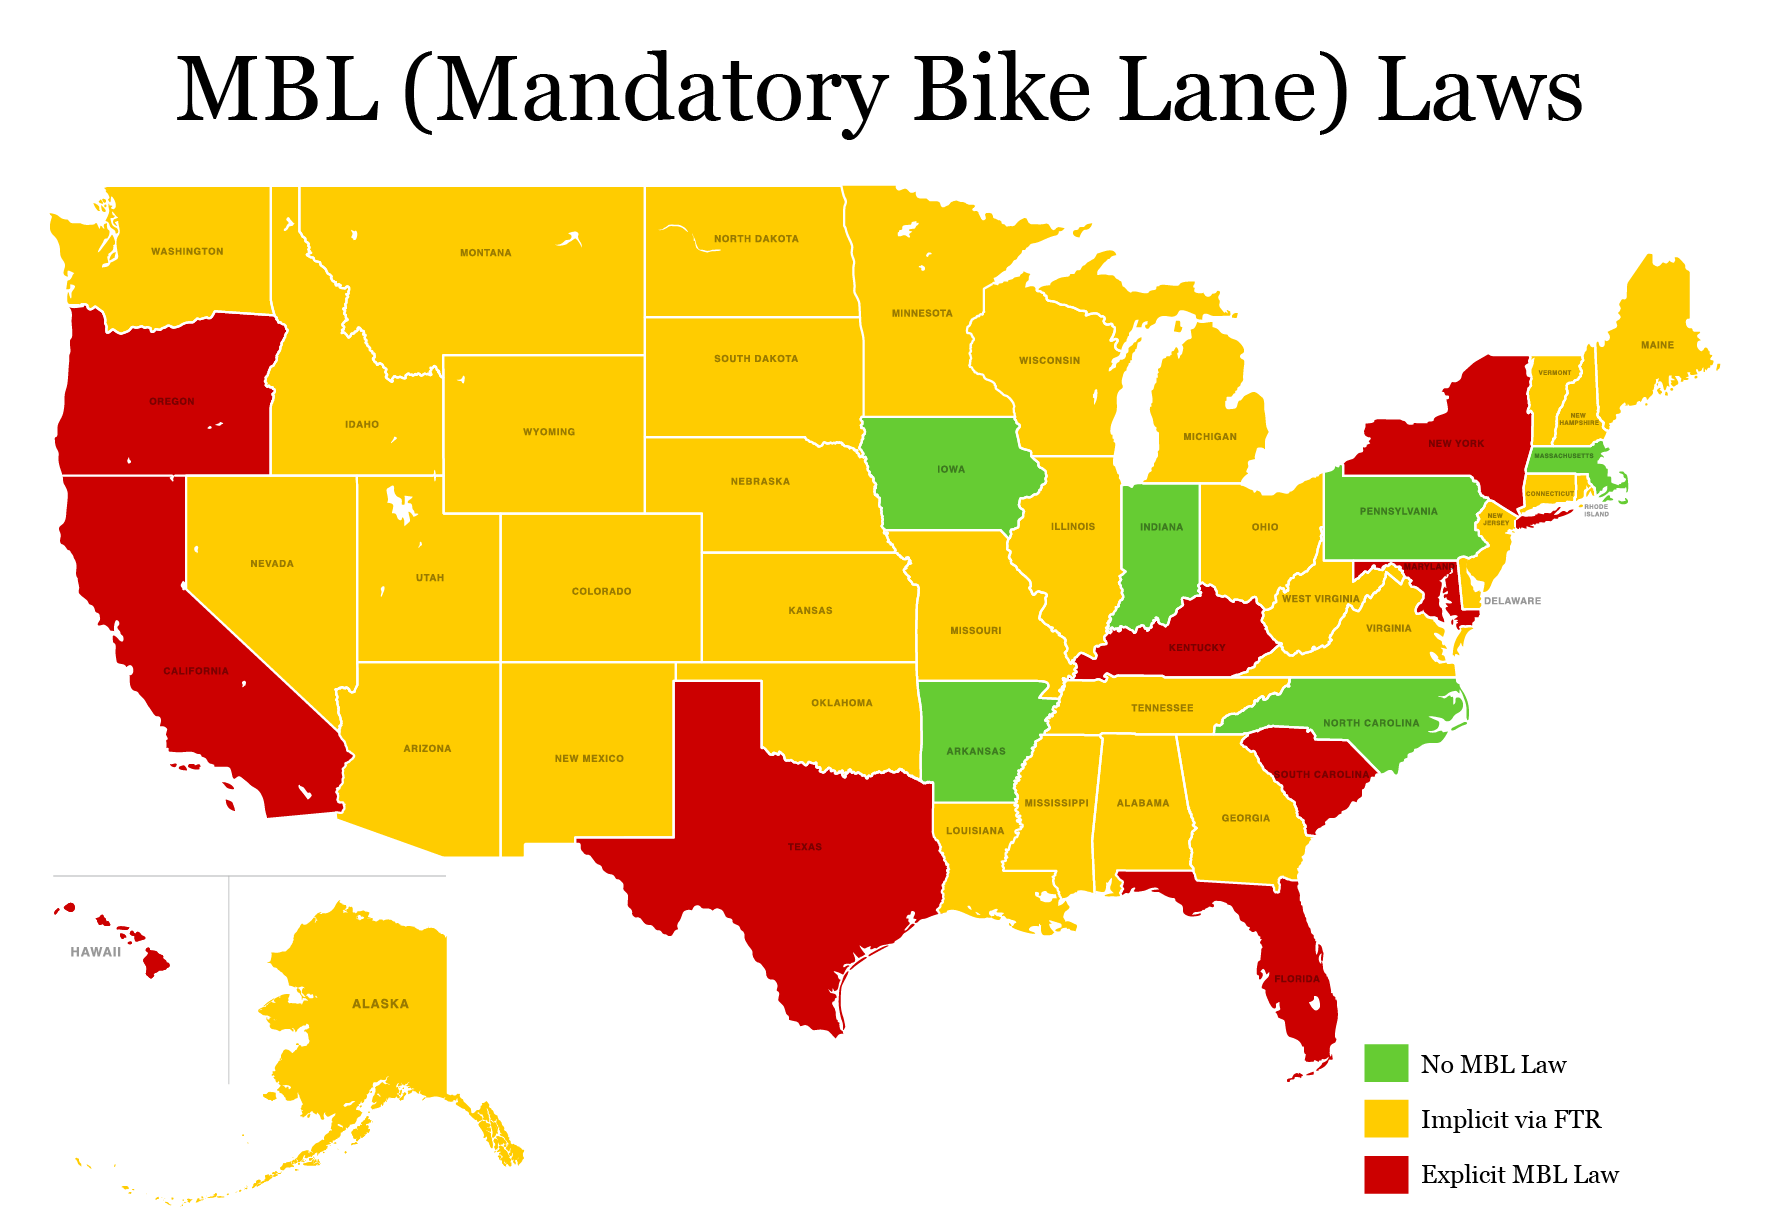 states with MBL laws